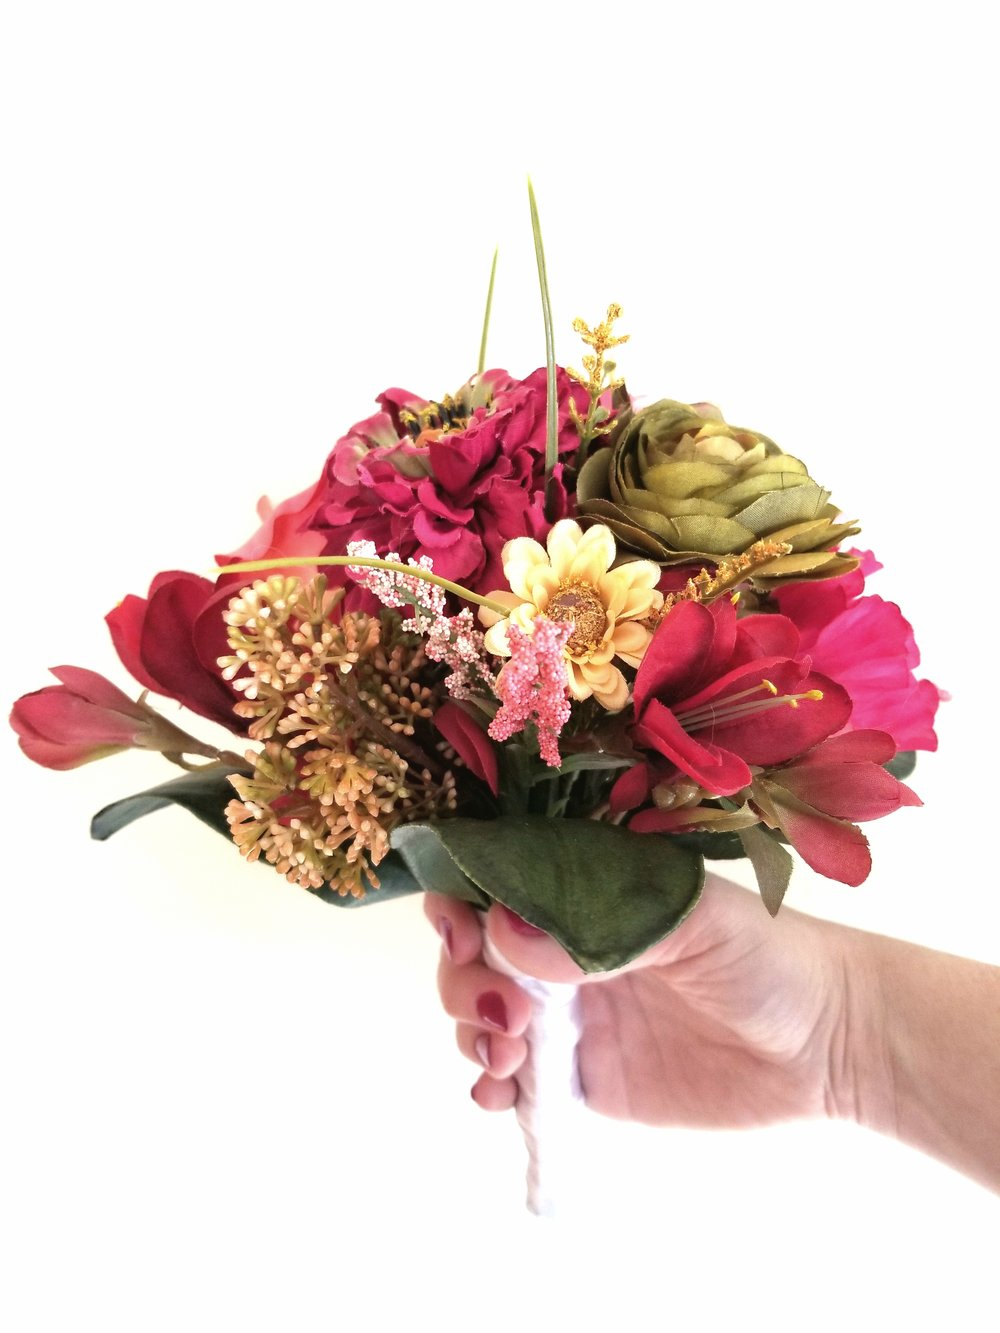 One of two bouquets provided by Nicki's Knacks Floral Crafts